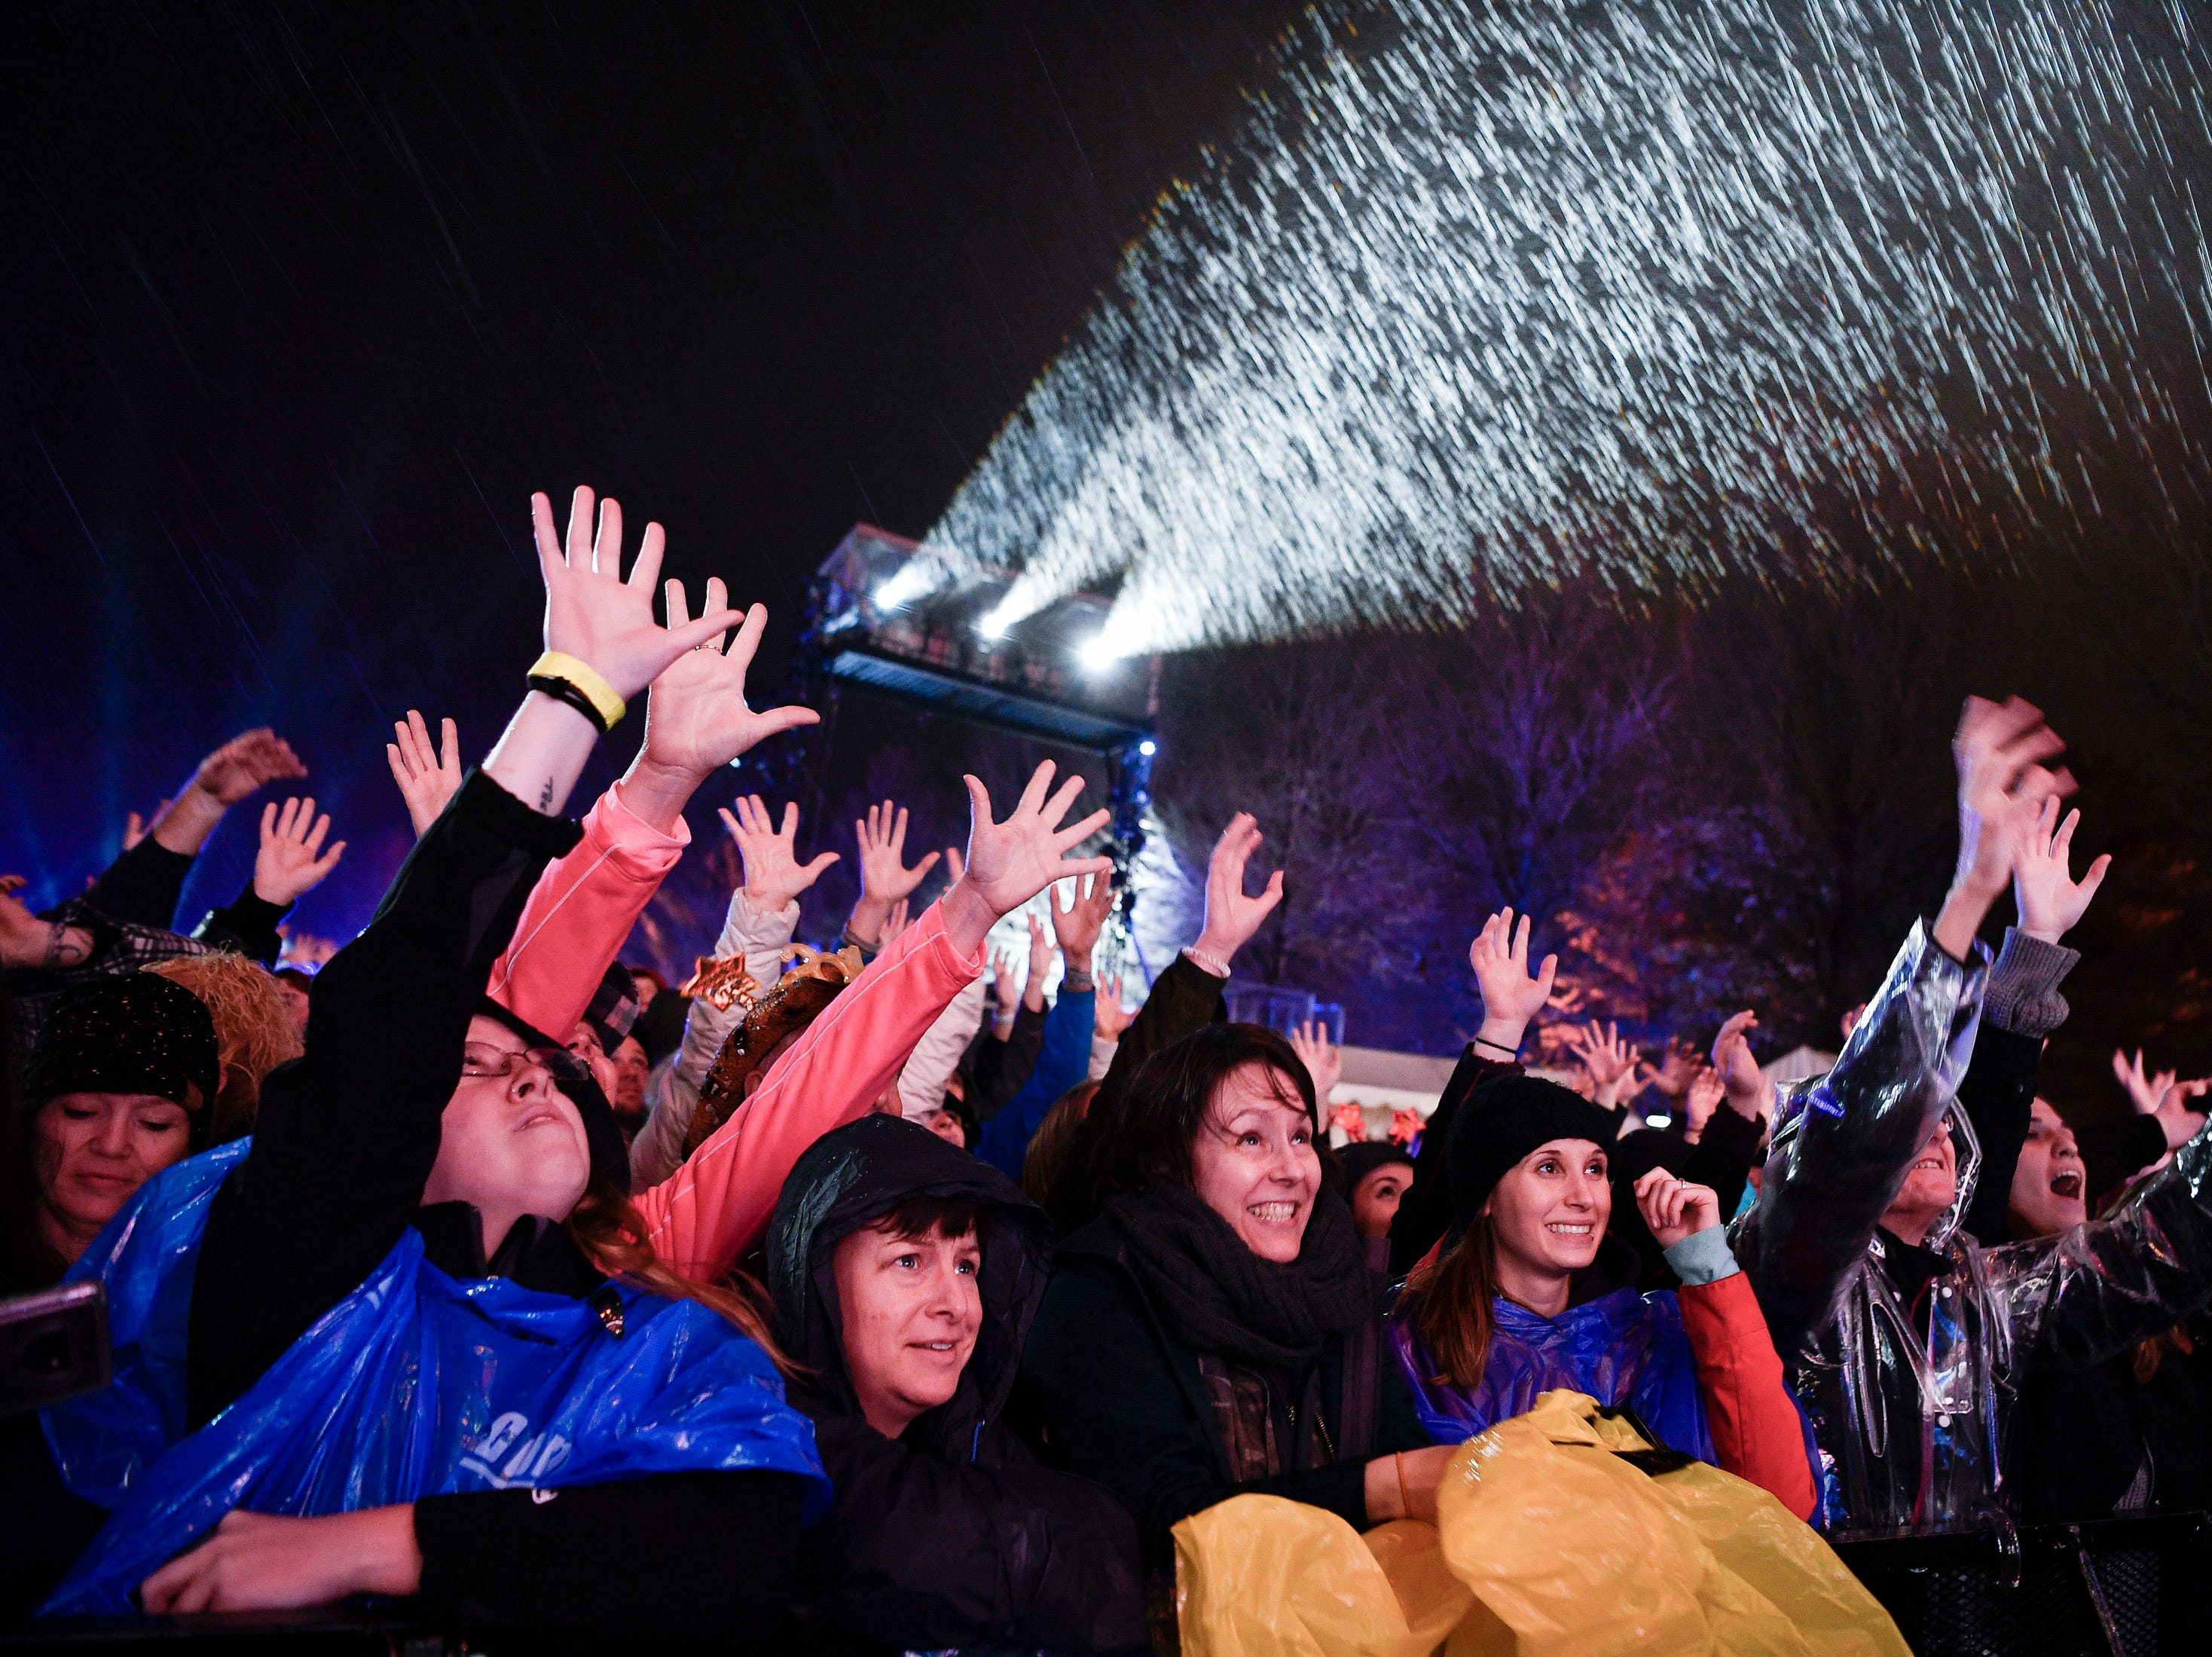 Fans cheer as Storme Warren greets the crowd during the Jack Daniel's Music City Midnight: New Year's Eve event at Bicentennial Capitol Mall State Park in Nashville, Tenn., Monday, Dec. 31, 2018.